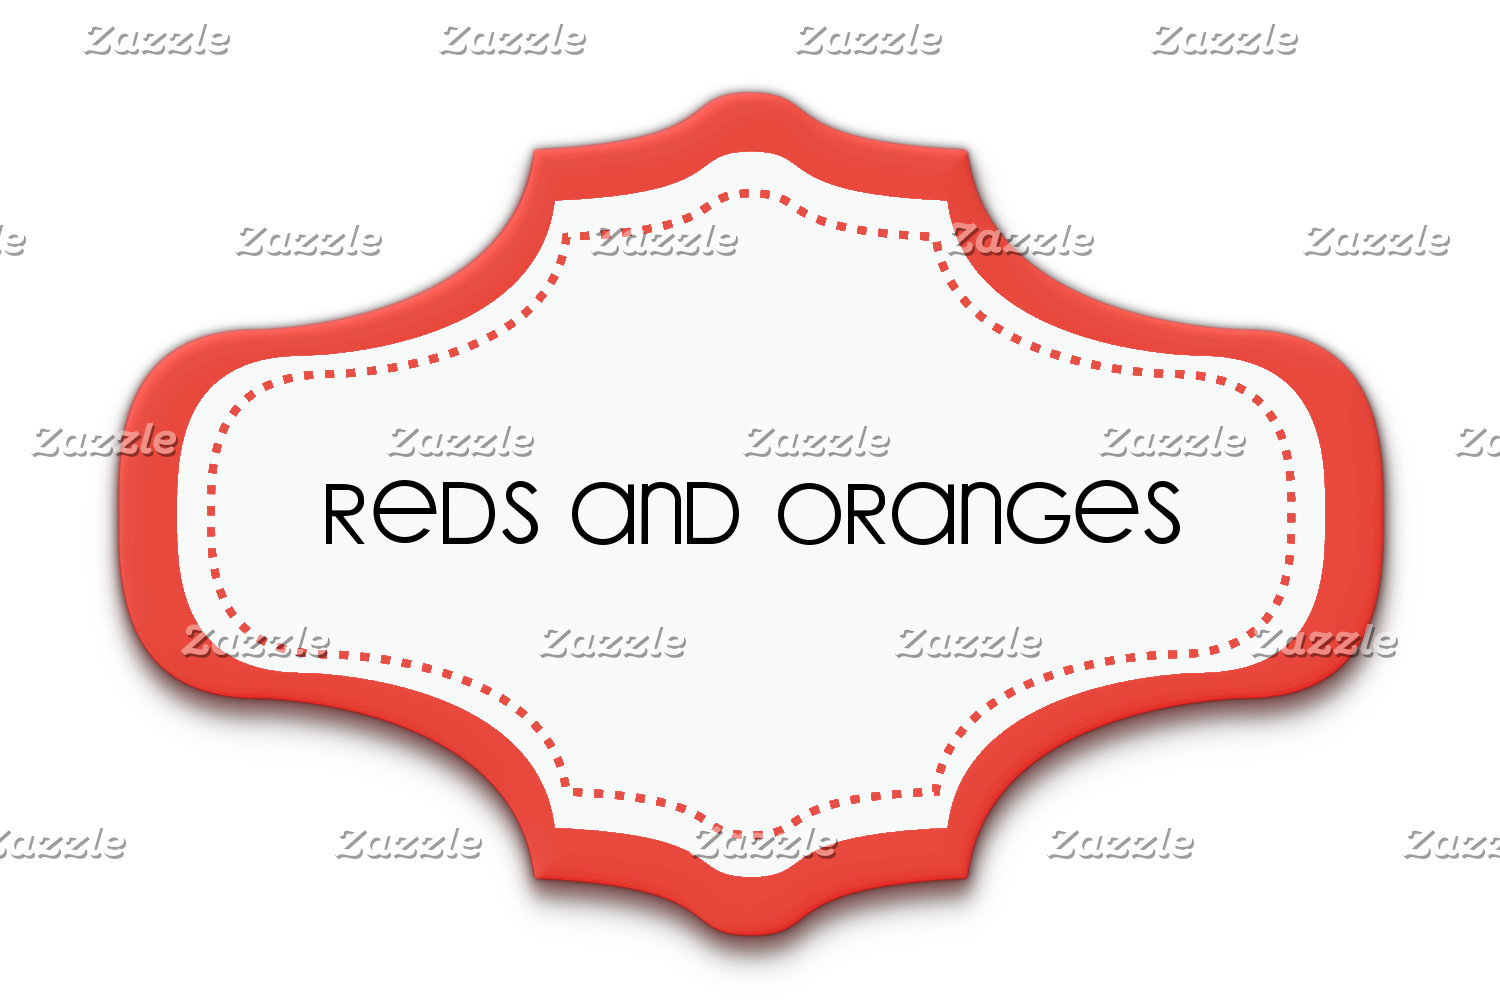 Reds and Oranges